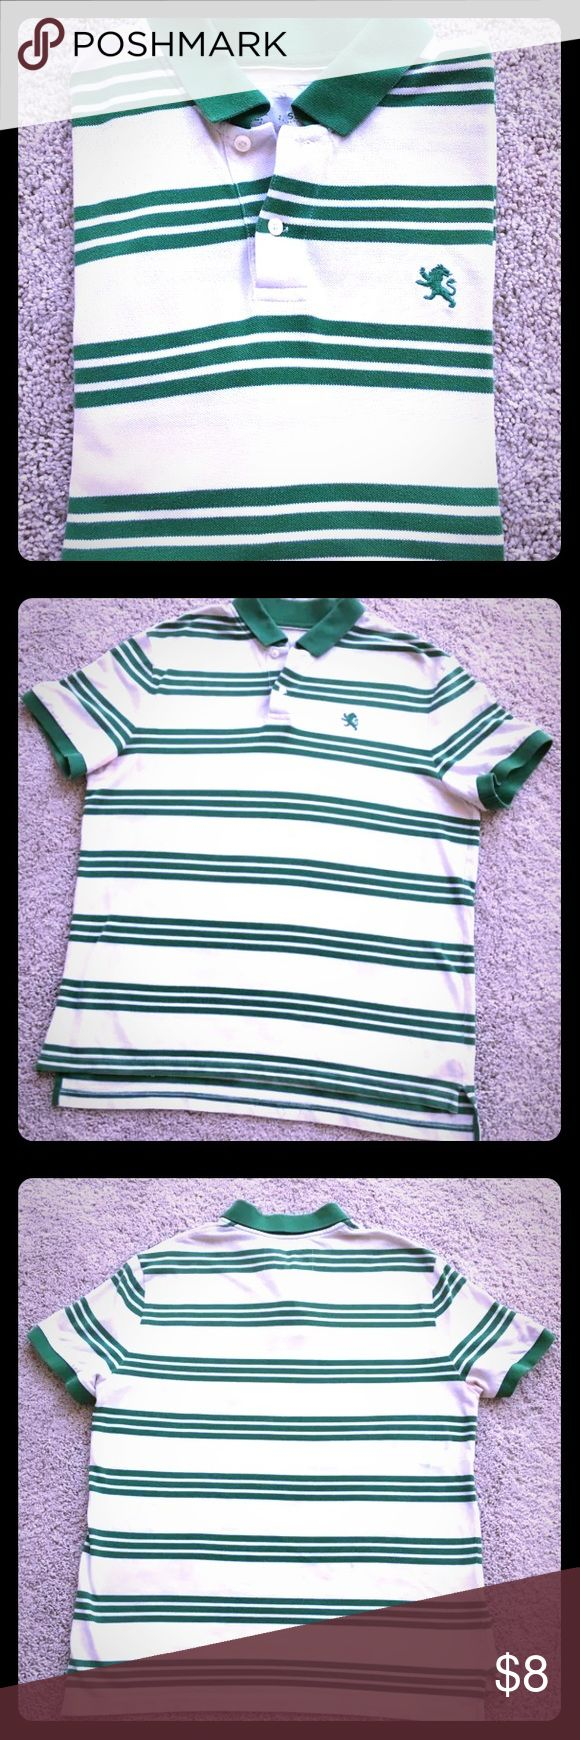 Express men polo shirts Express POLO   White with green stripes polo men's shirt.  Mens Fine Stripe Pique Polo  (Short-sleeved striped polo shirt), soft and comfortable to wear )  This is a retro look in preppy. The body and sleeves  Change the pattern, and put the stripes on the collar back  Has become a playful design.  Size XL Express Shirts Polos